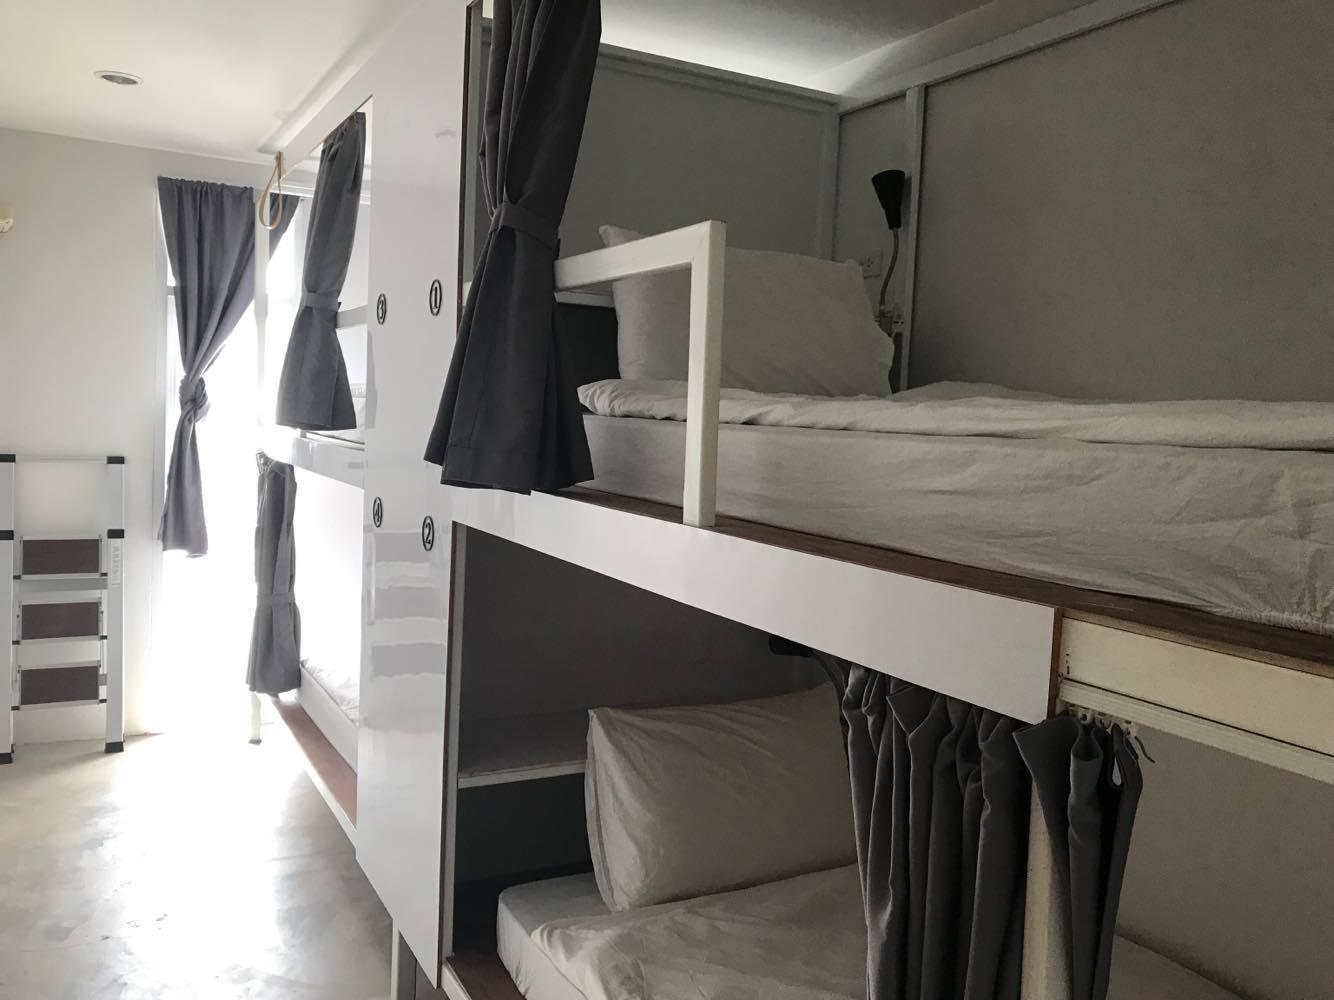 1 Person in 4-Bed Dormitory - Male Only